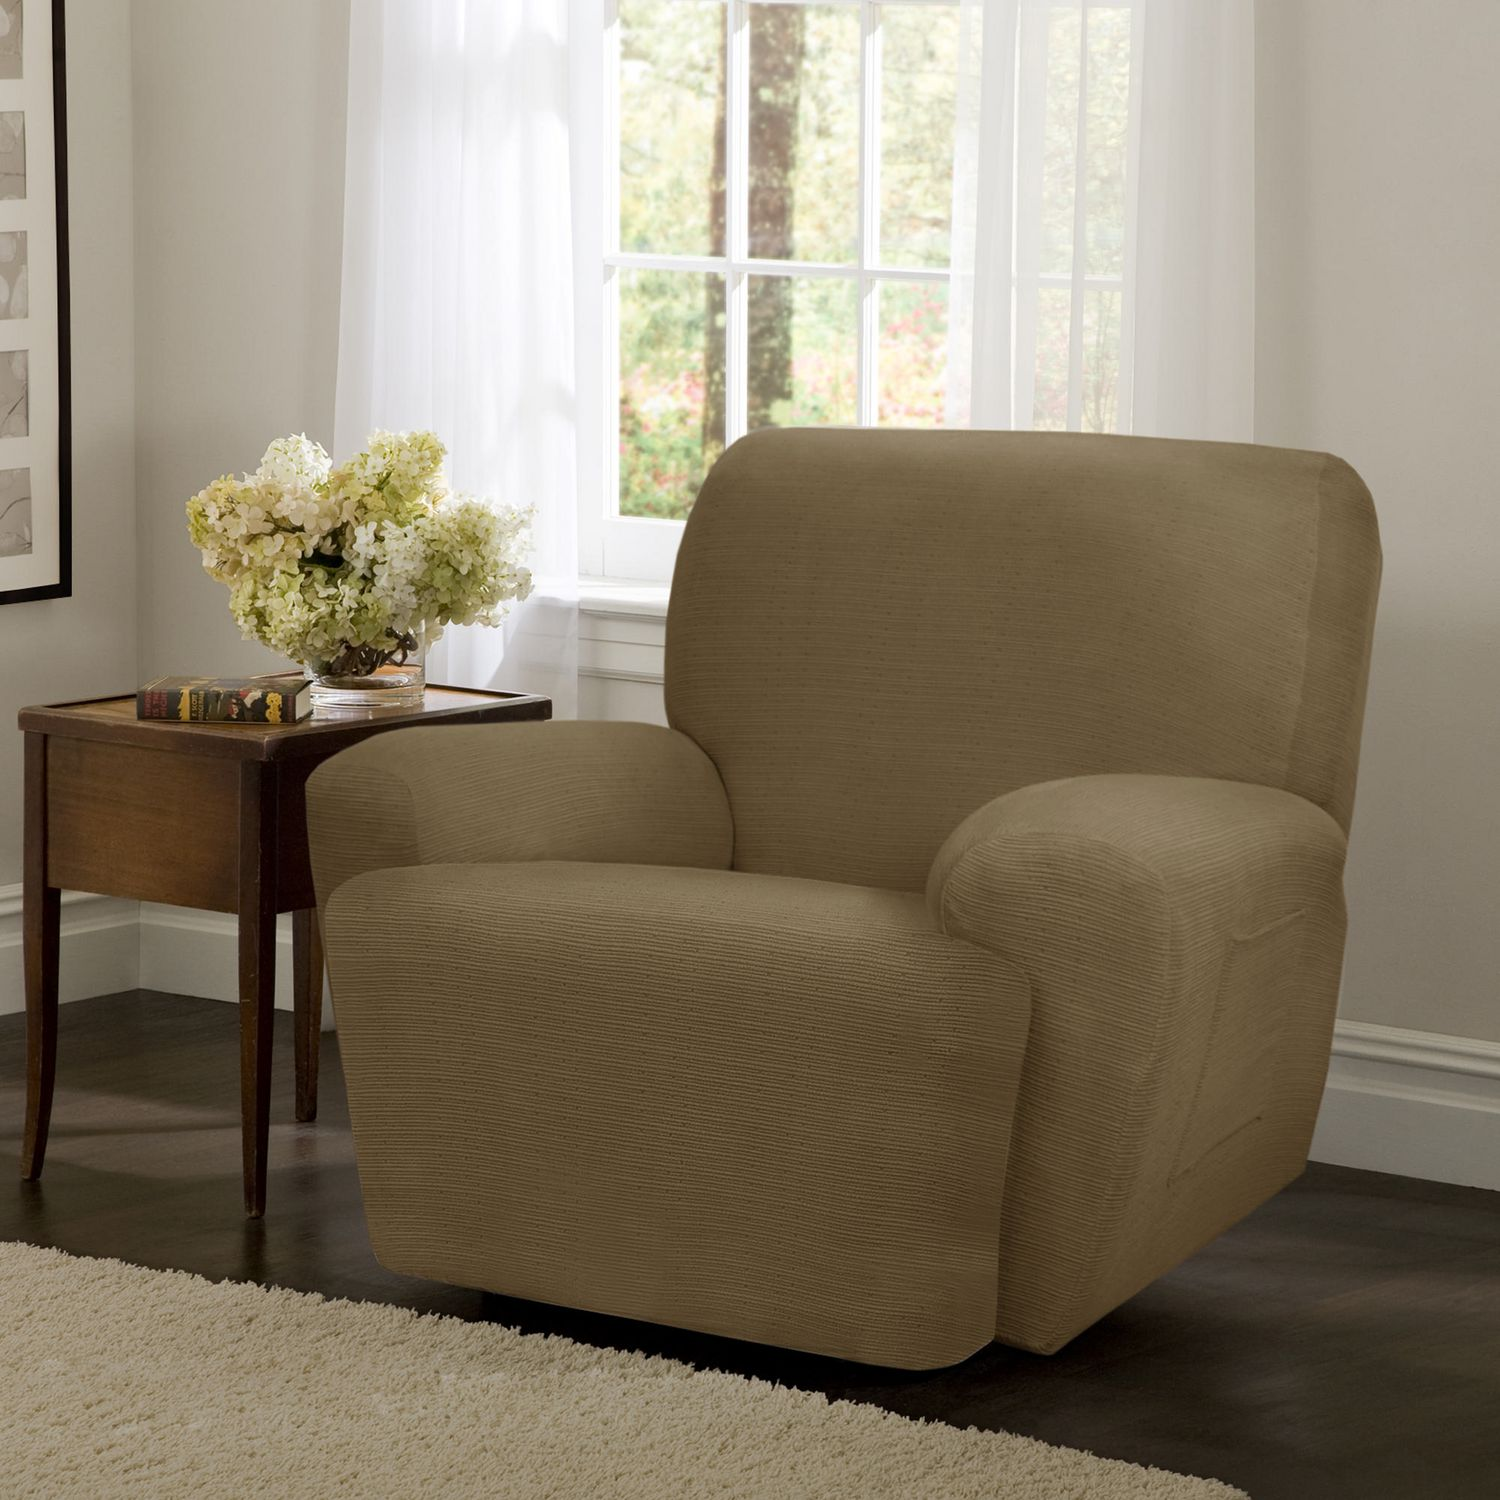 Recliner Arm Covers | Armchair Slipcovers | Recliner Covers